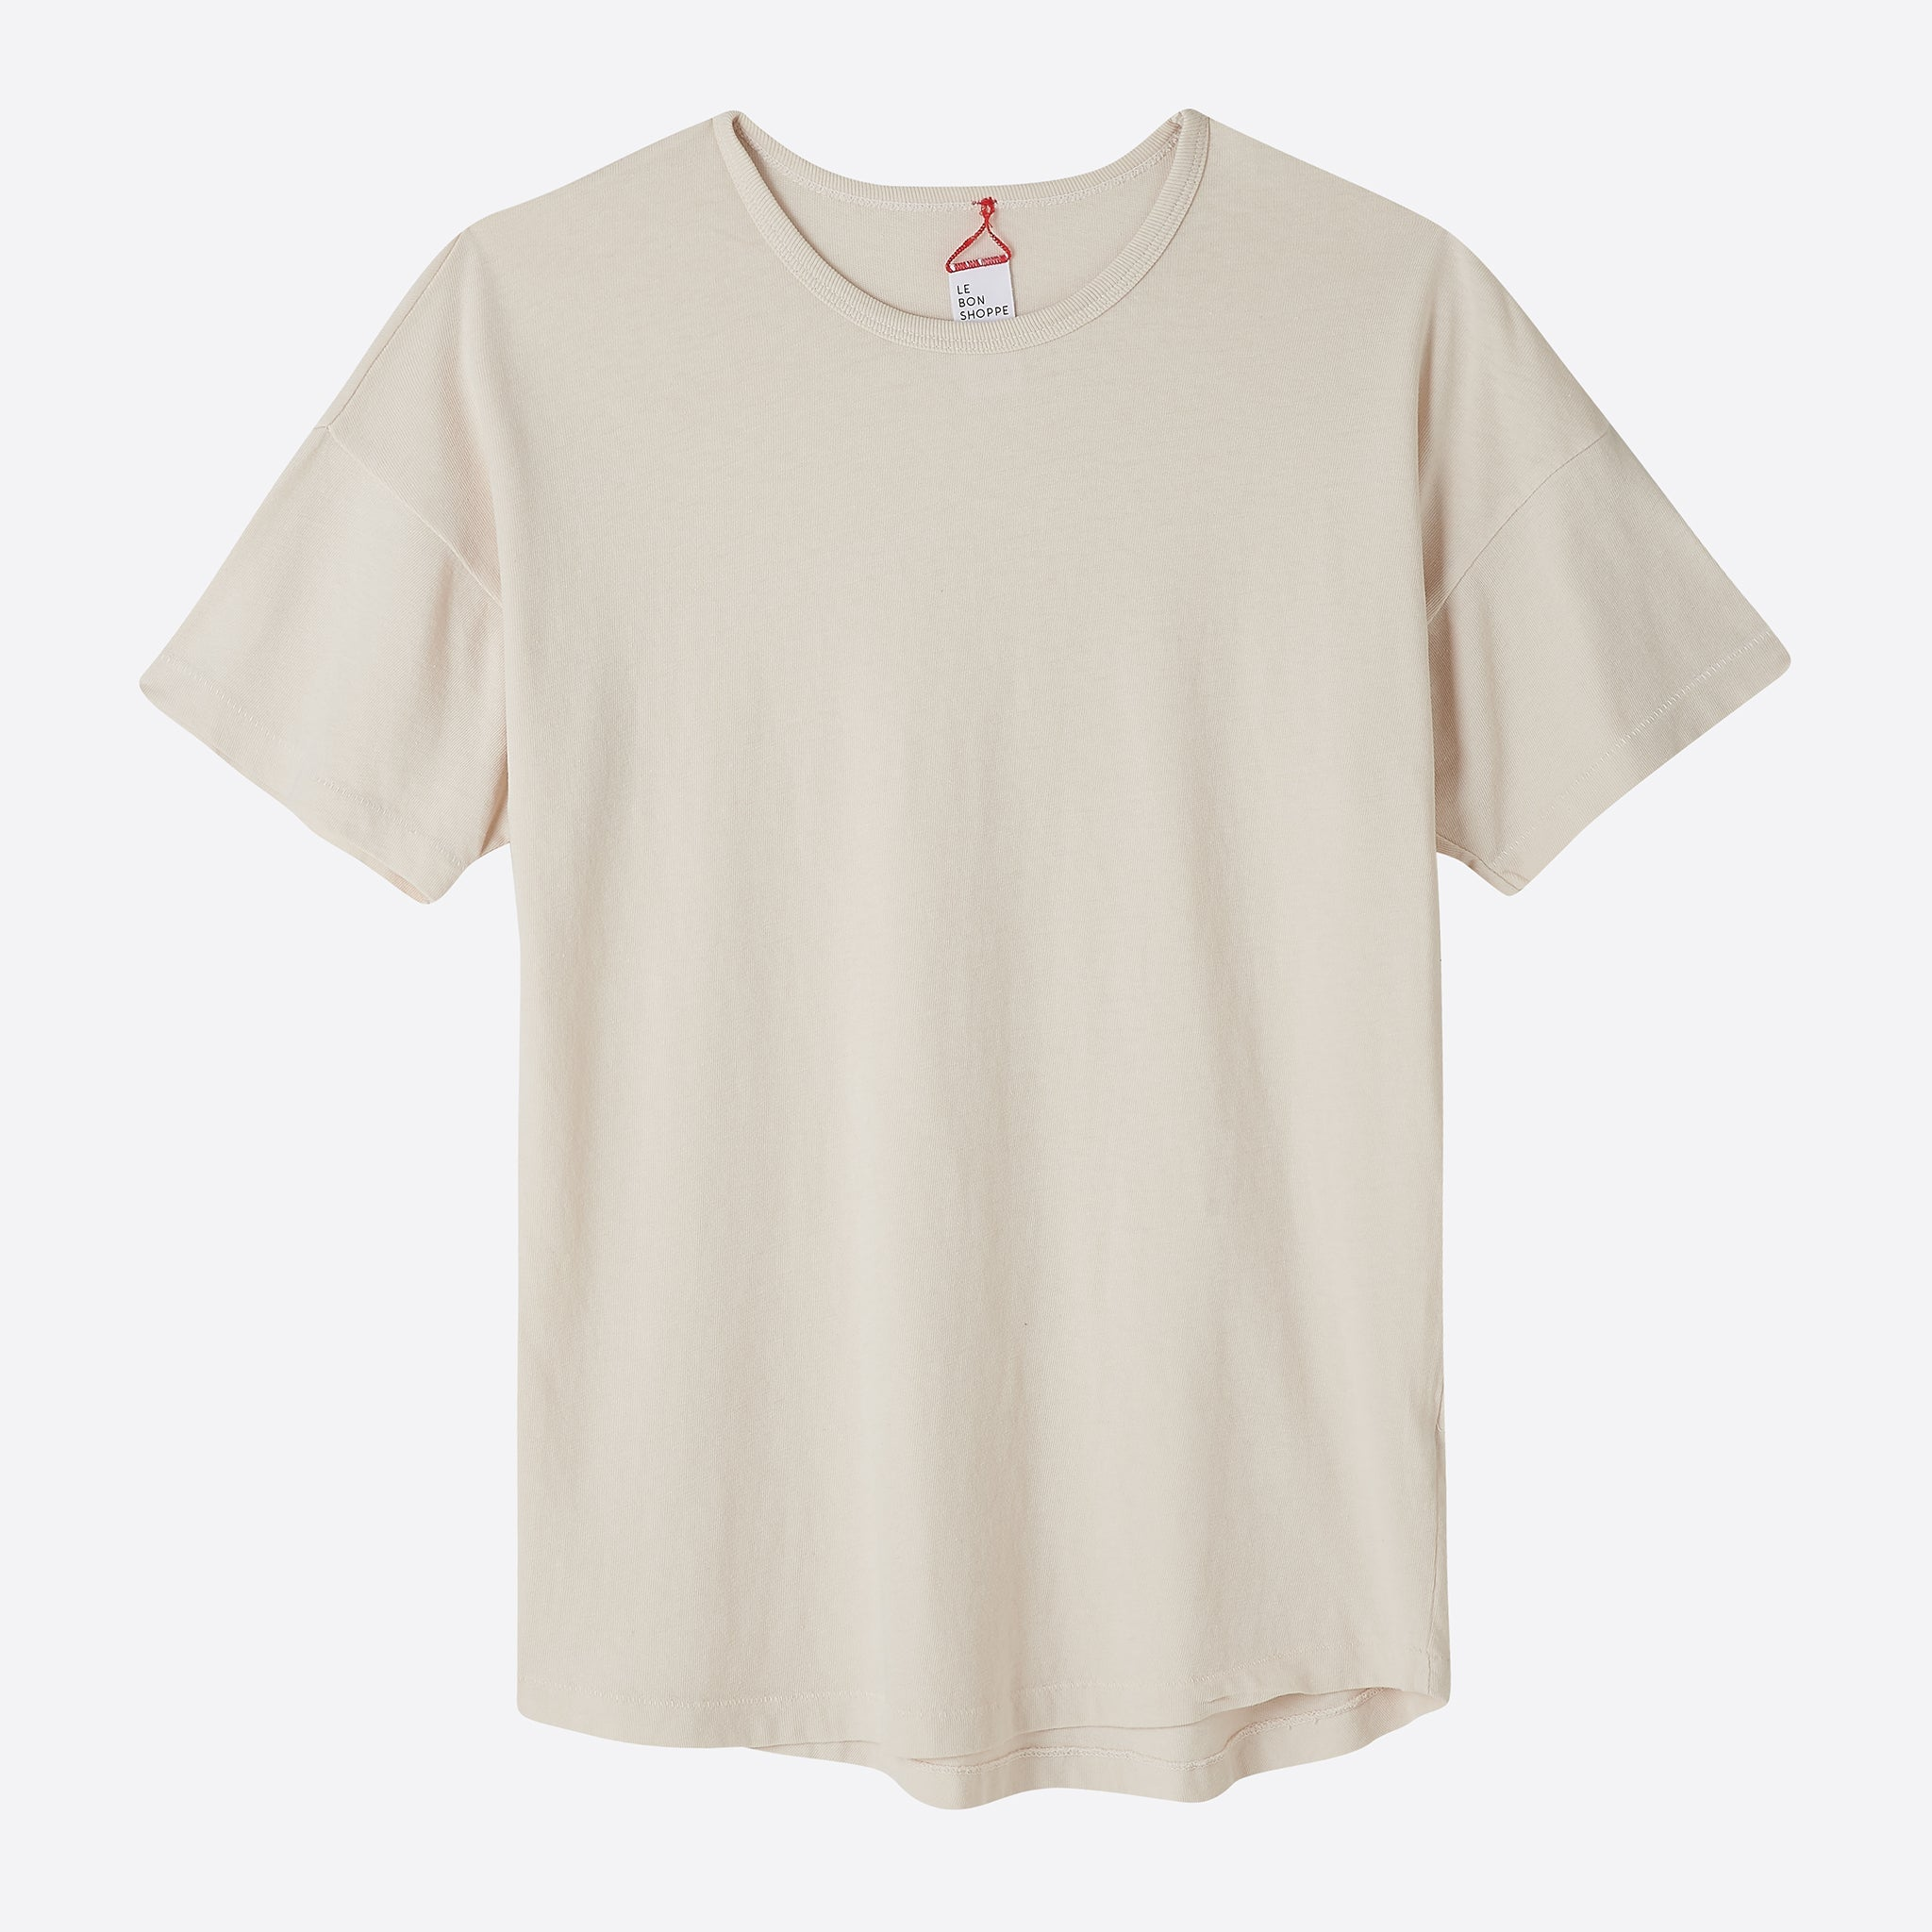 Le Bon Shoppe Her Tee in Bone